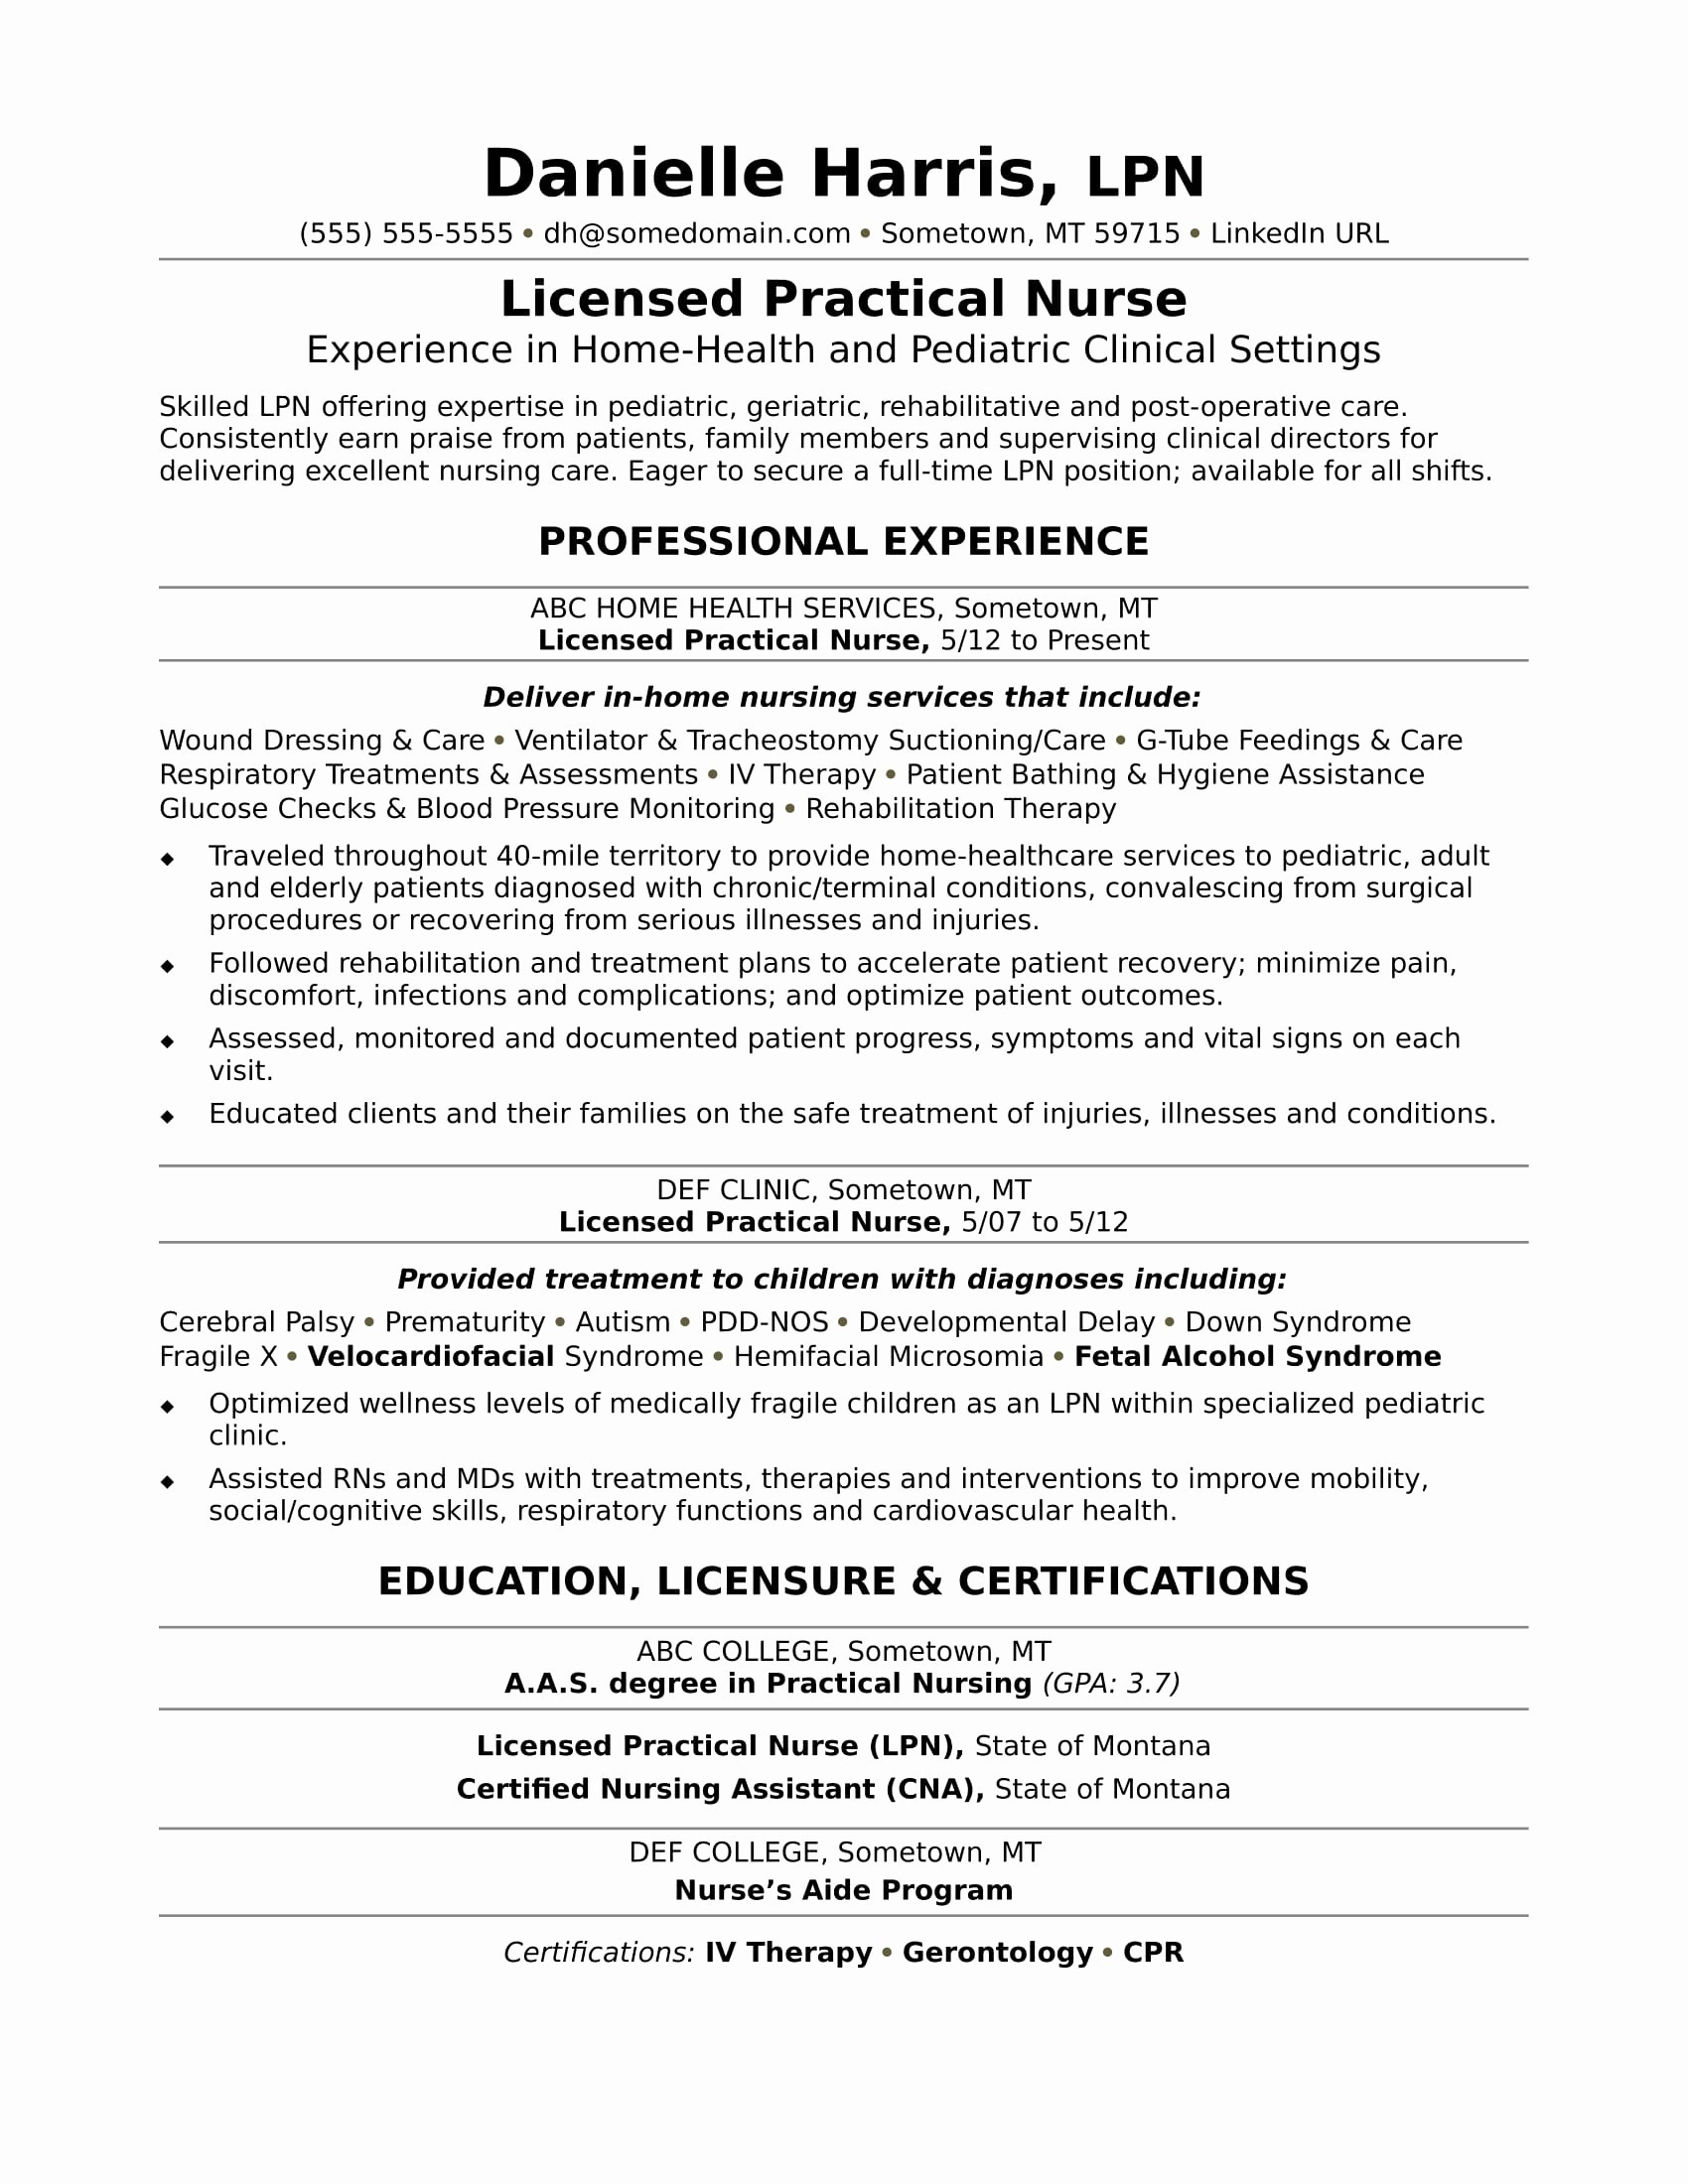 Resume for Environmental Services - 24 New Entry Level Nursing Resume